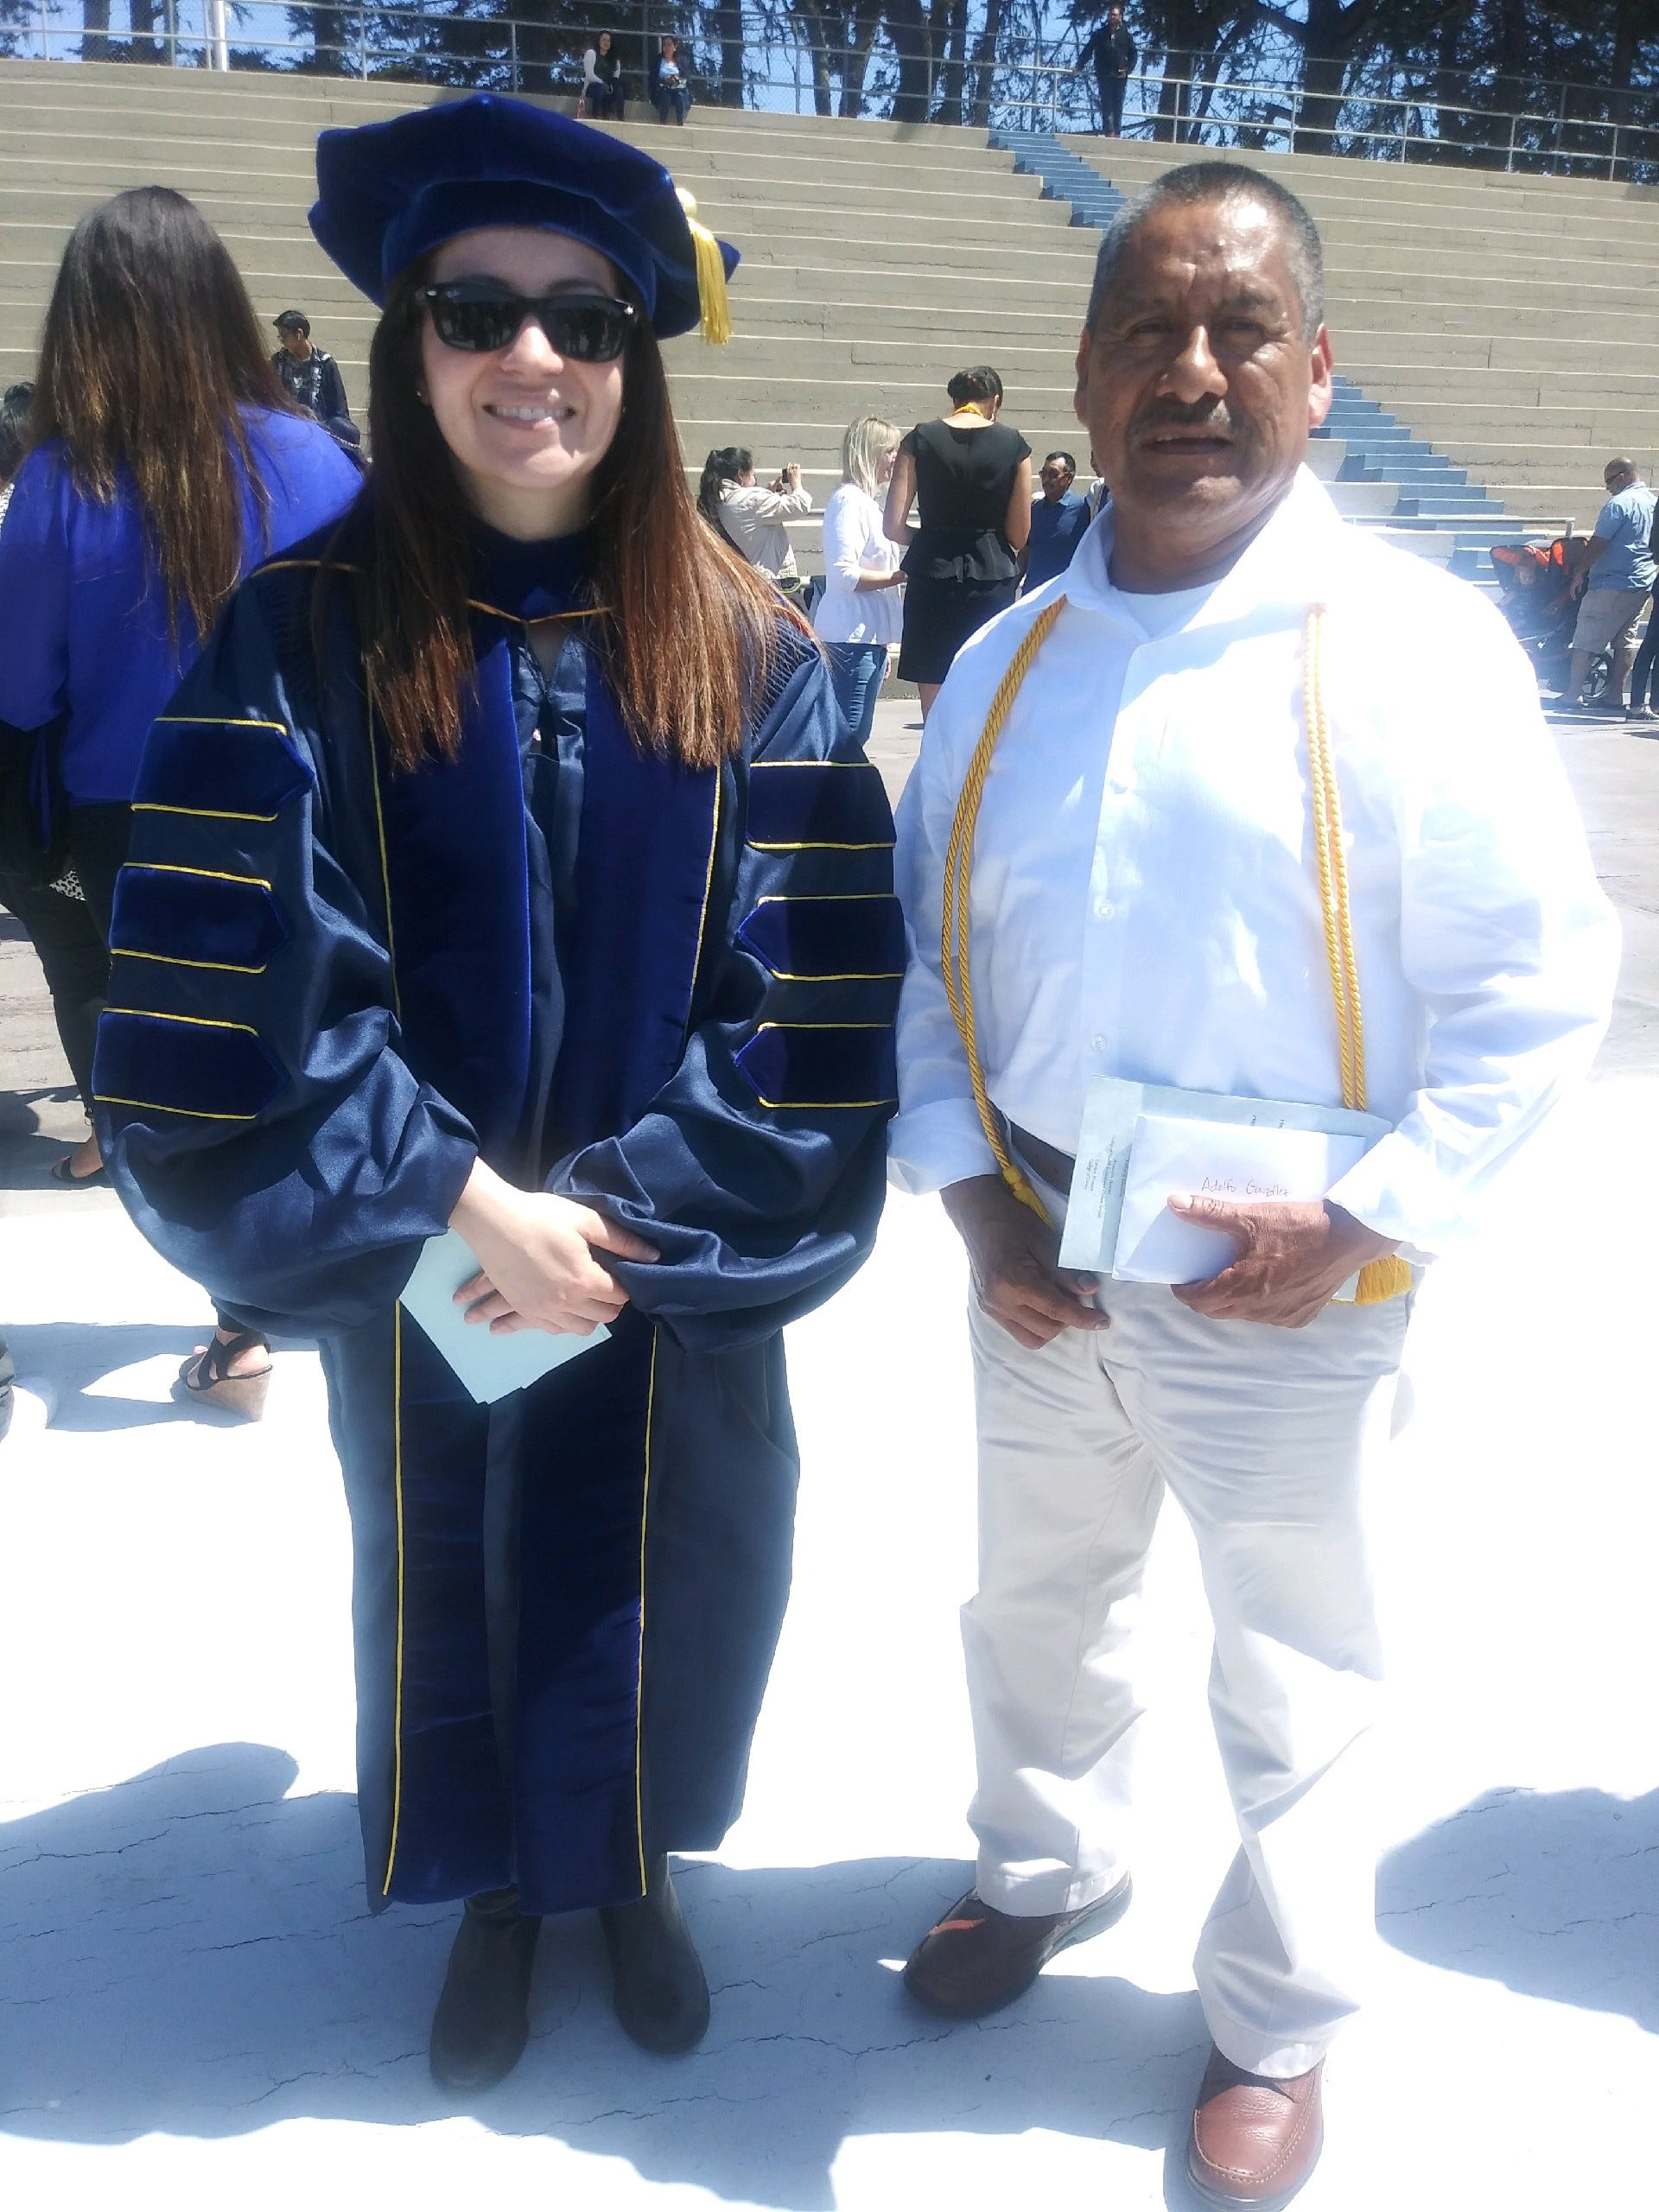 Christine Fernandez, a professor of Spanish at the World Languages and Cultures school, stands with Adolfo González at California State University, Monterey Bay's honors convocation on May 11, 2019.